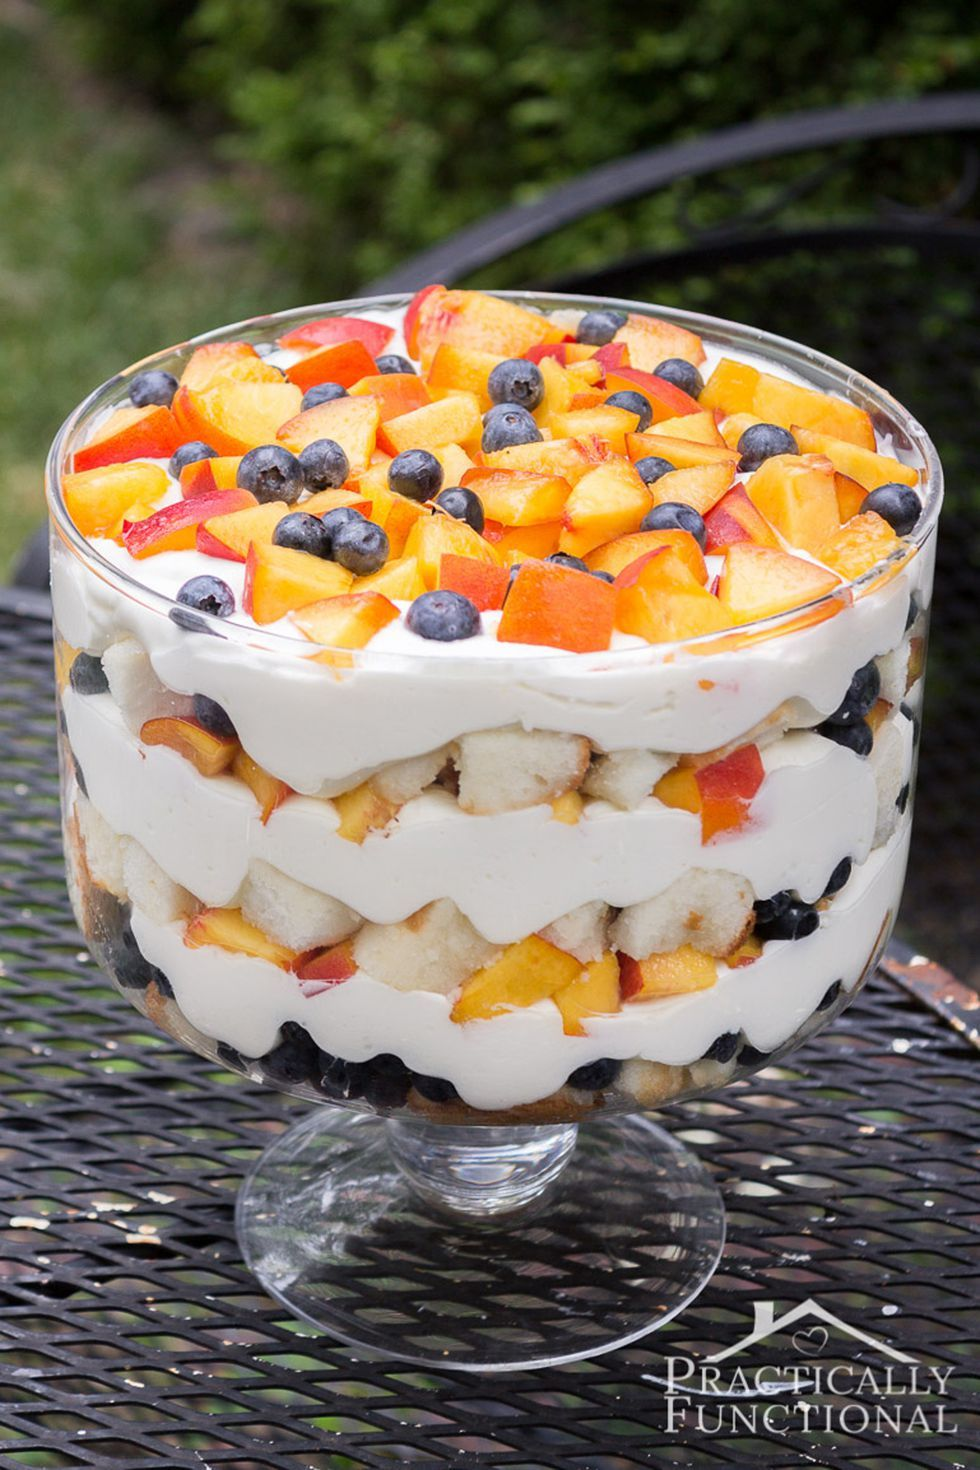 12 Easy Summer Trifle Recipes That Will Be the Star of Your Next Barbecue is part of Summer trifle recipes - These look SO good!